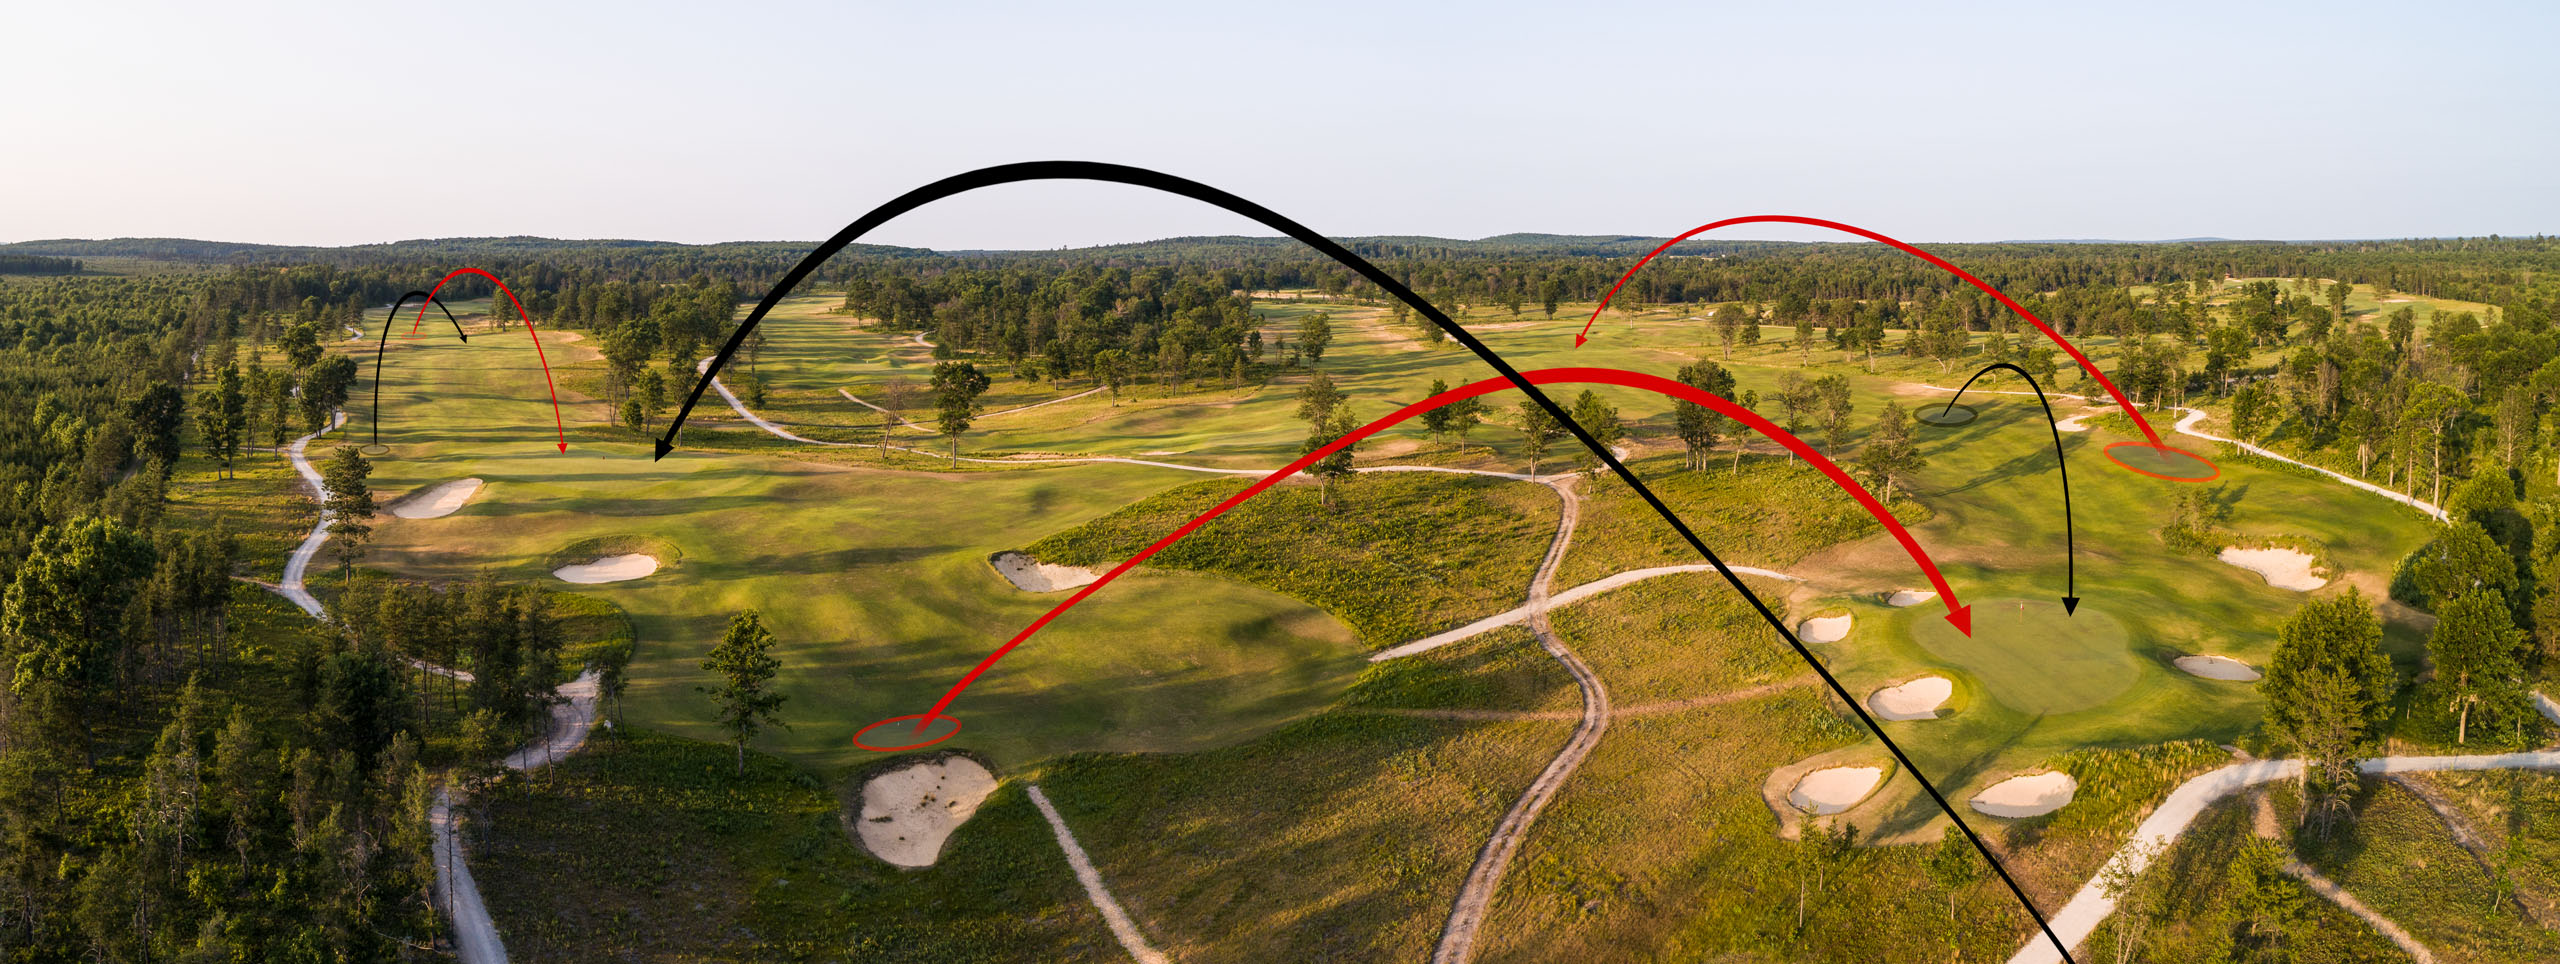 Shot-tracker arrows illustrate how Doak used the same corner of the property to accommodate Nos. 5 through 7 Red and Nos. 12 through 14 Black.